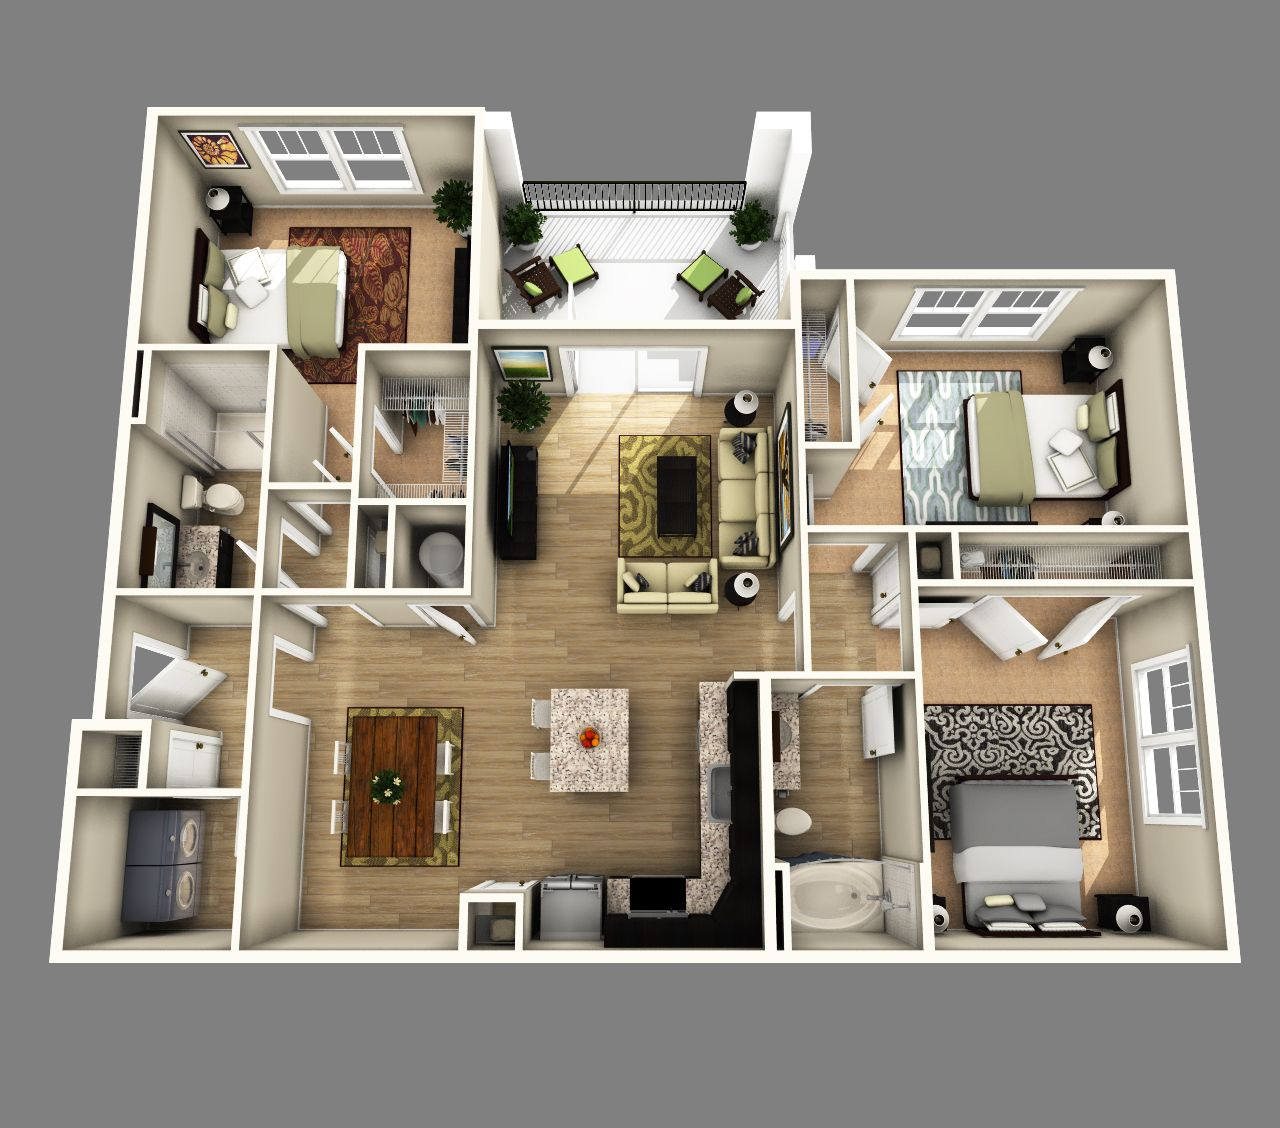 3 bedrooms apartments home design - Design of three room apartment ...